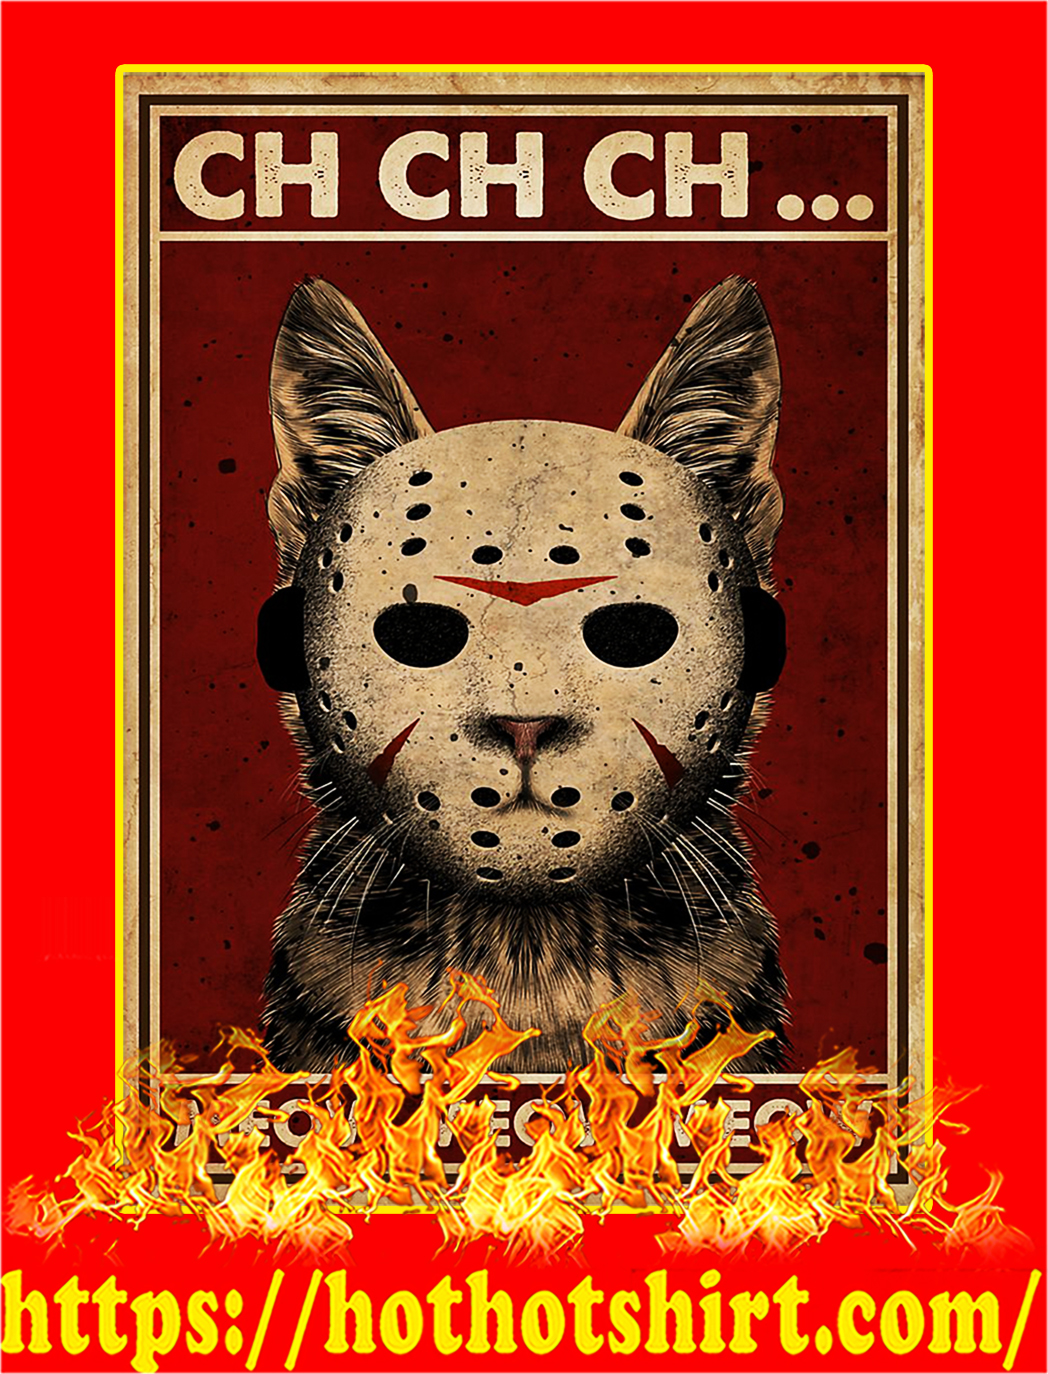 Cat Jason ch ch ch meow meow meow poster - A3